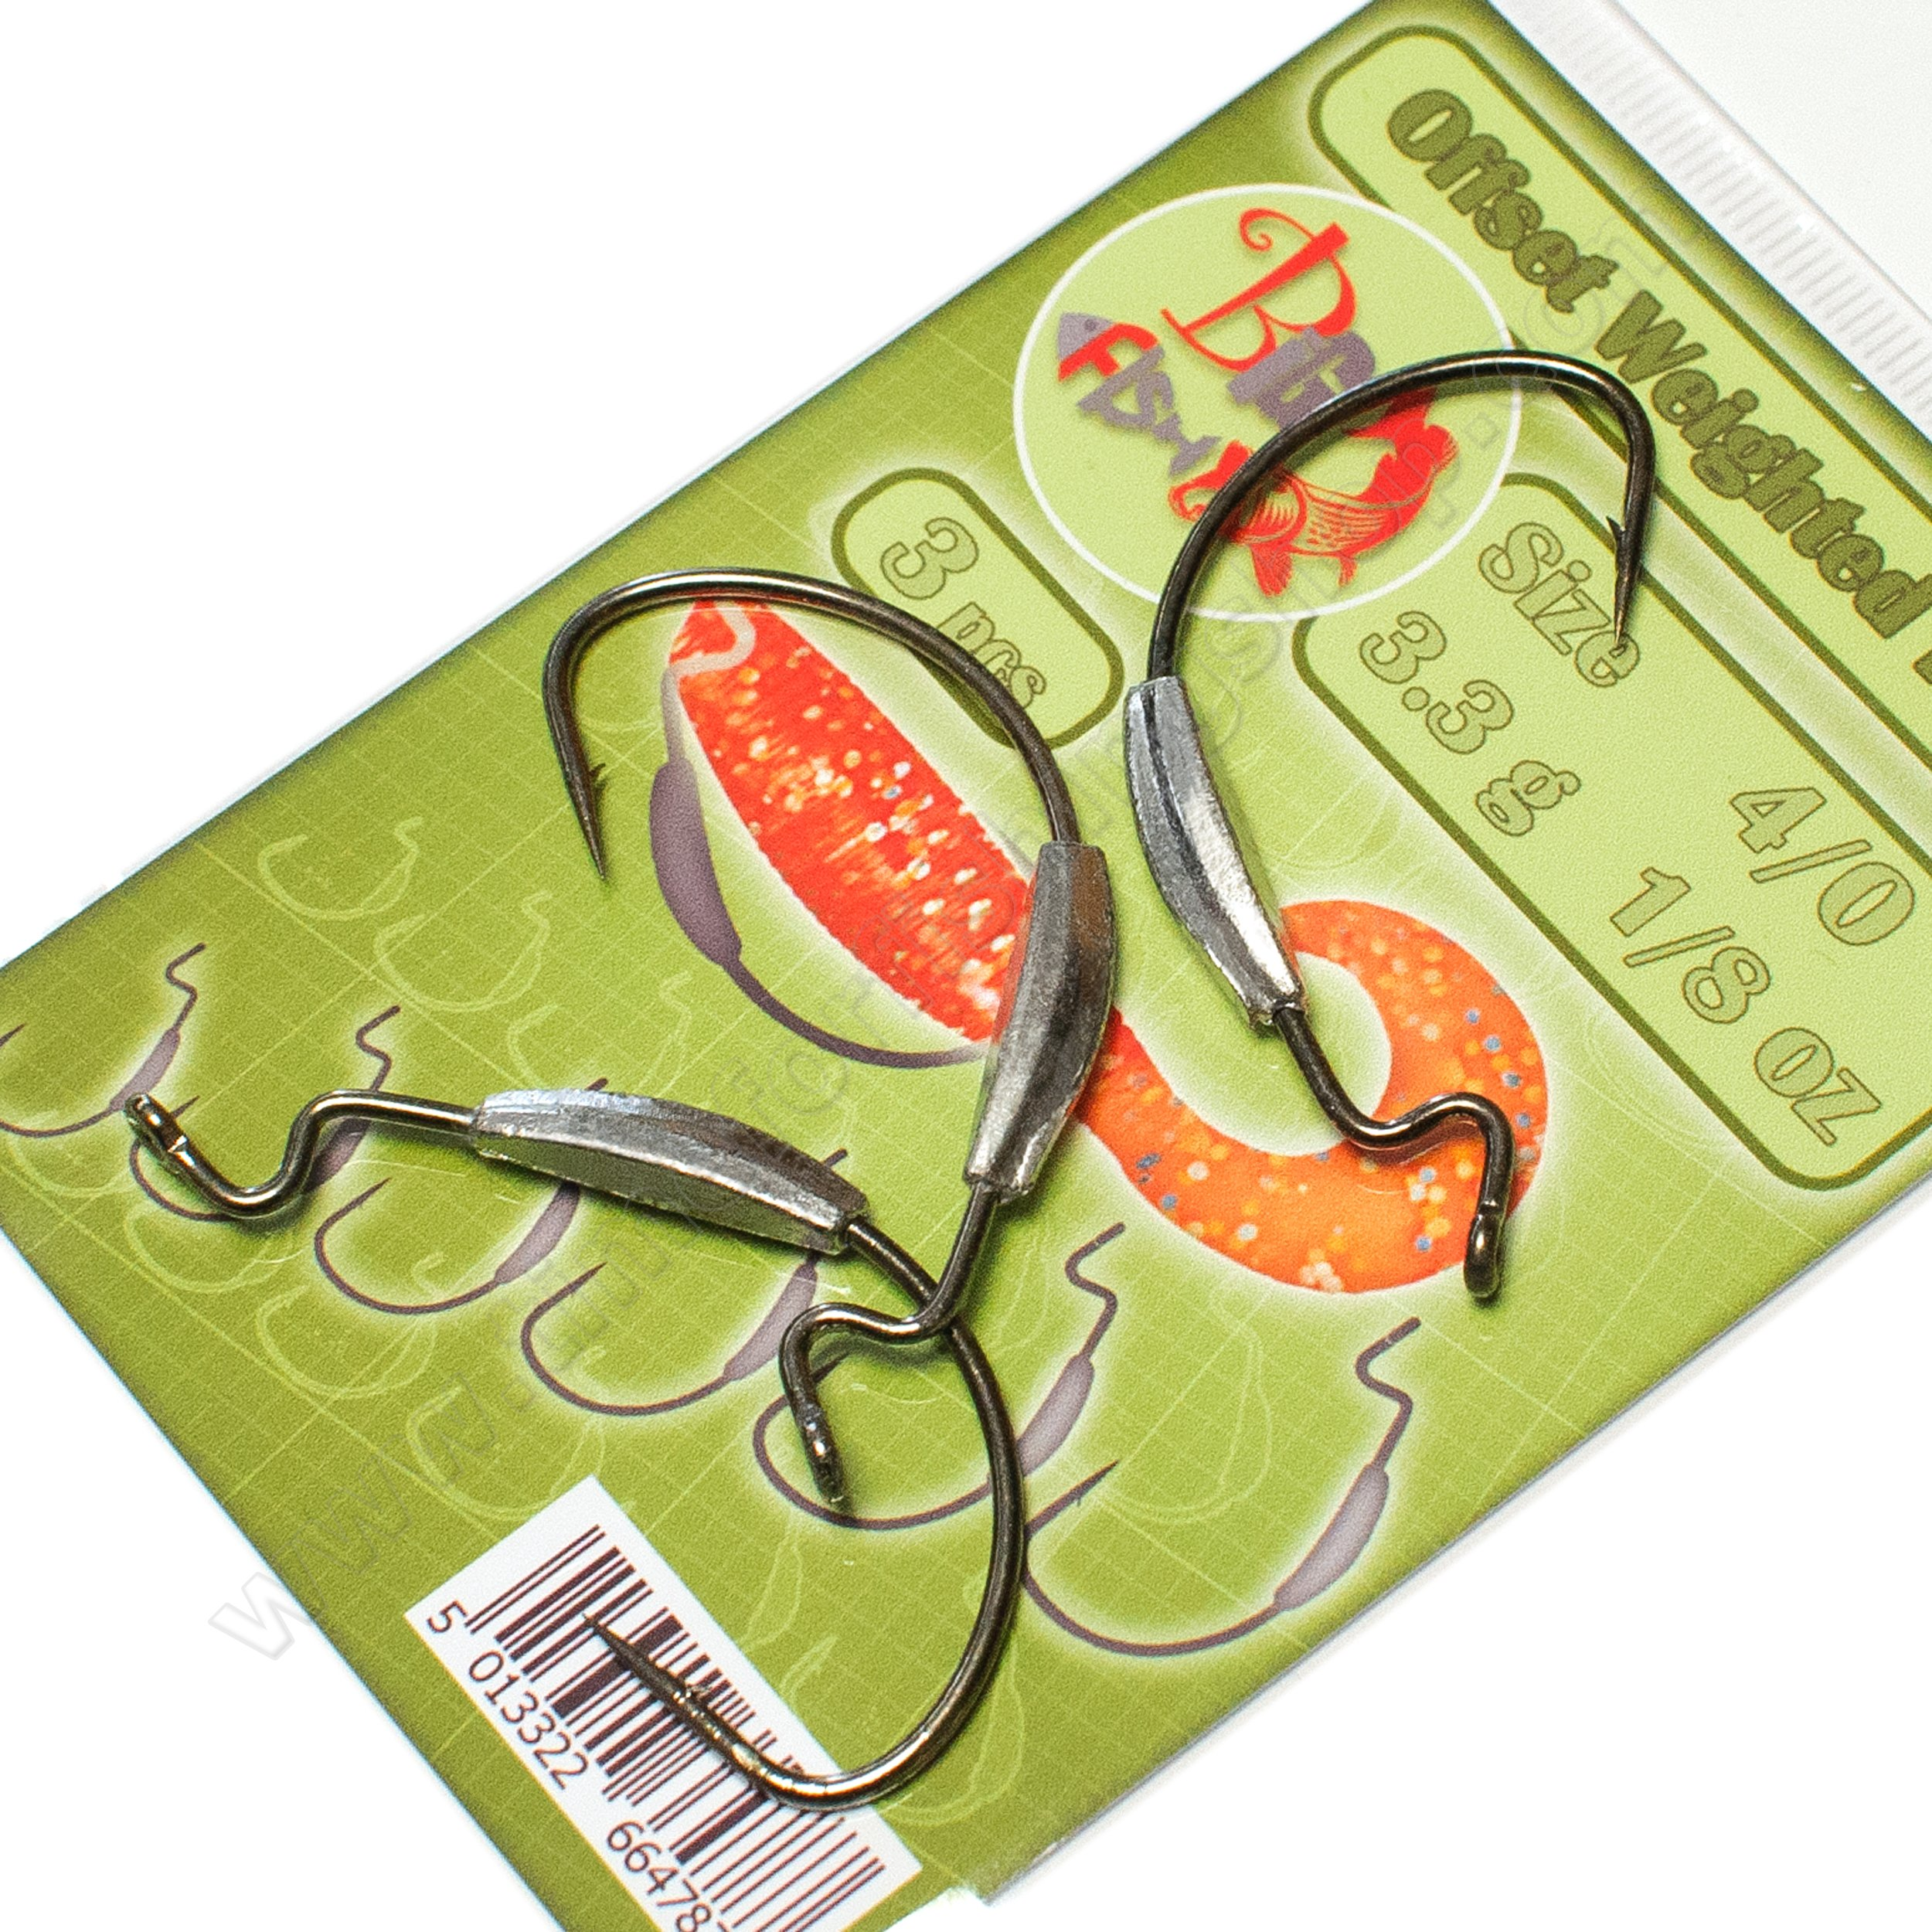 Offset Hooks Weighted Wide Gap Weedless Soft Lures Bait Worm Pike Fishing